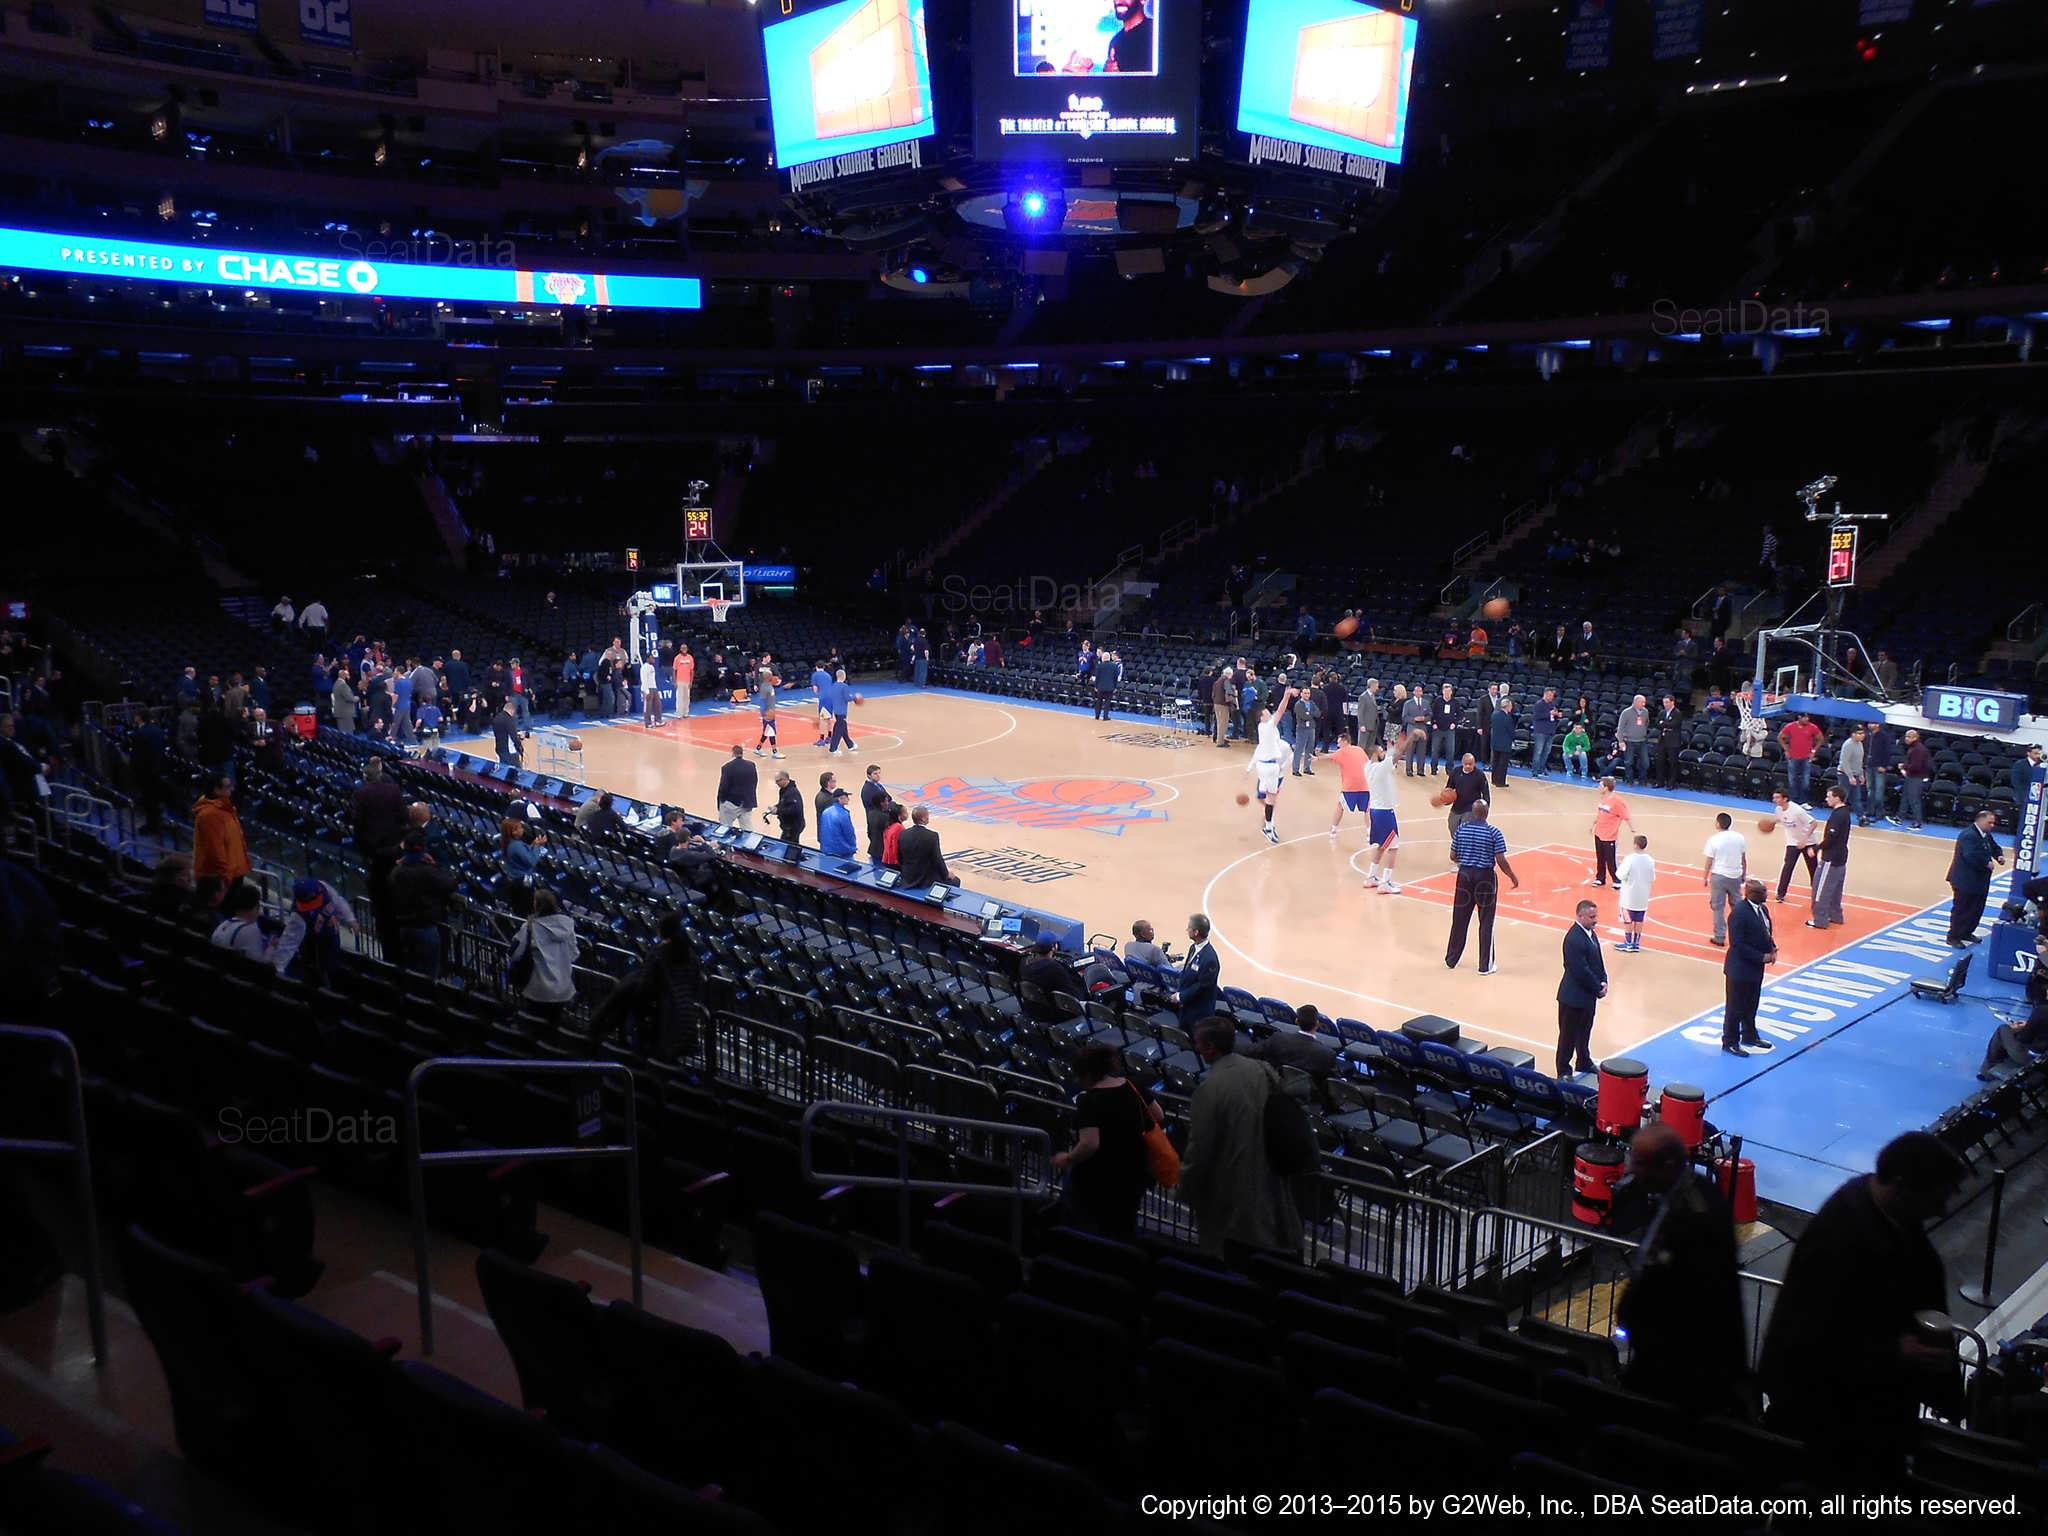 Seat view from section 109 at Madison Square Garden, home of the New York Knicks.